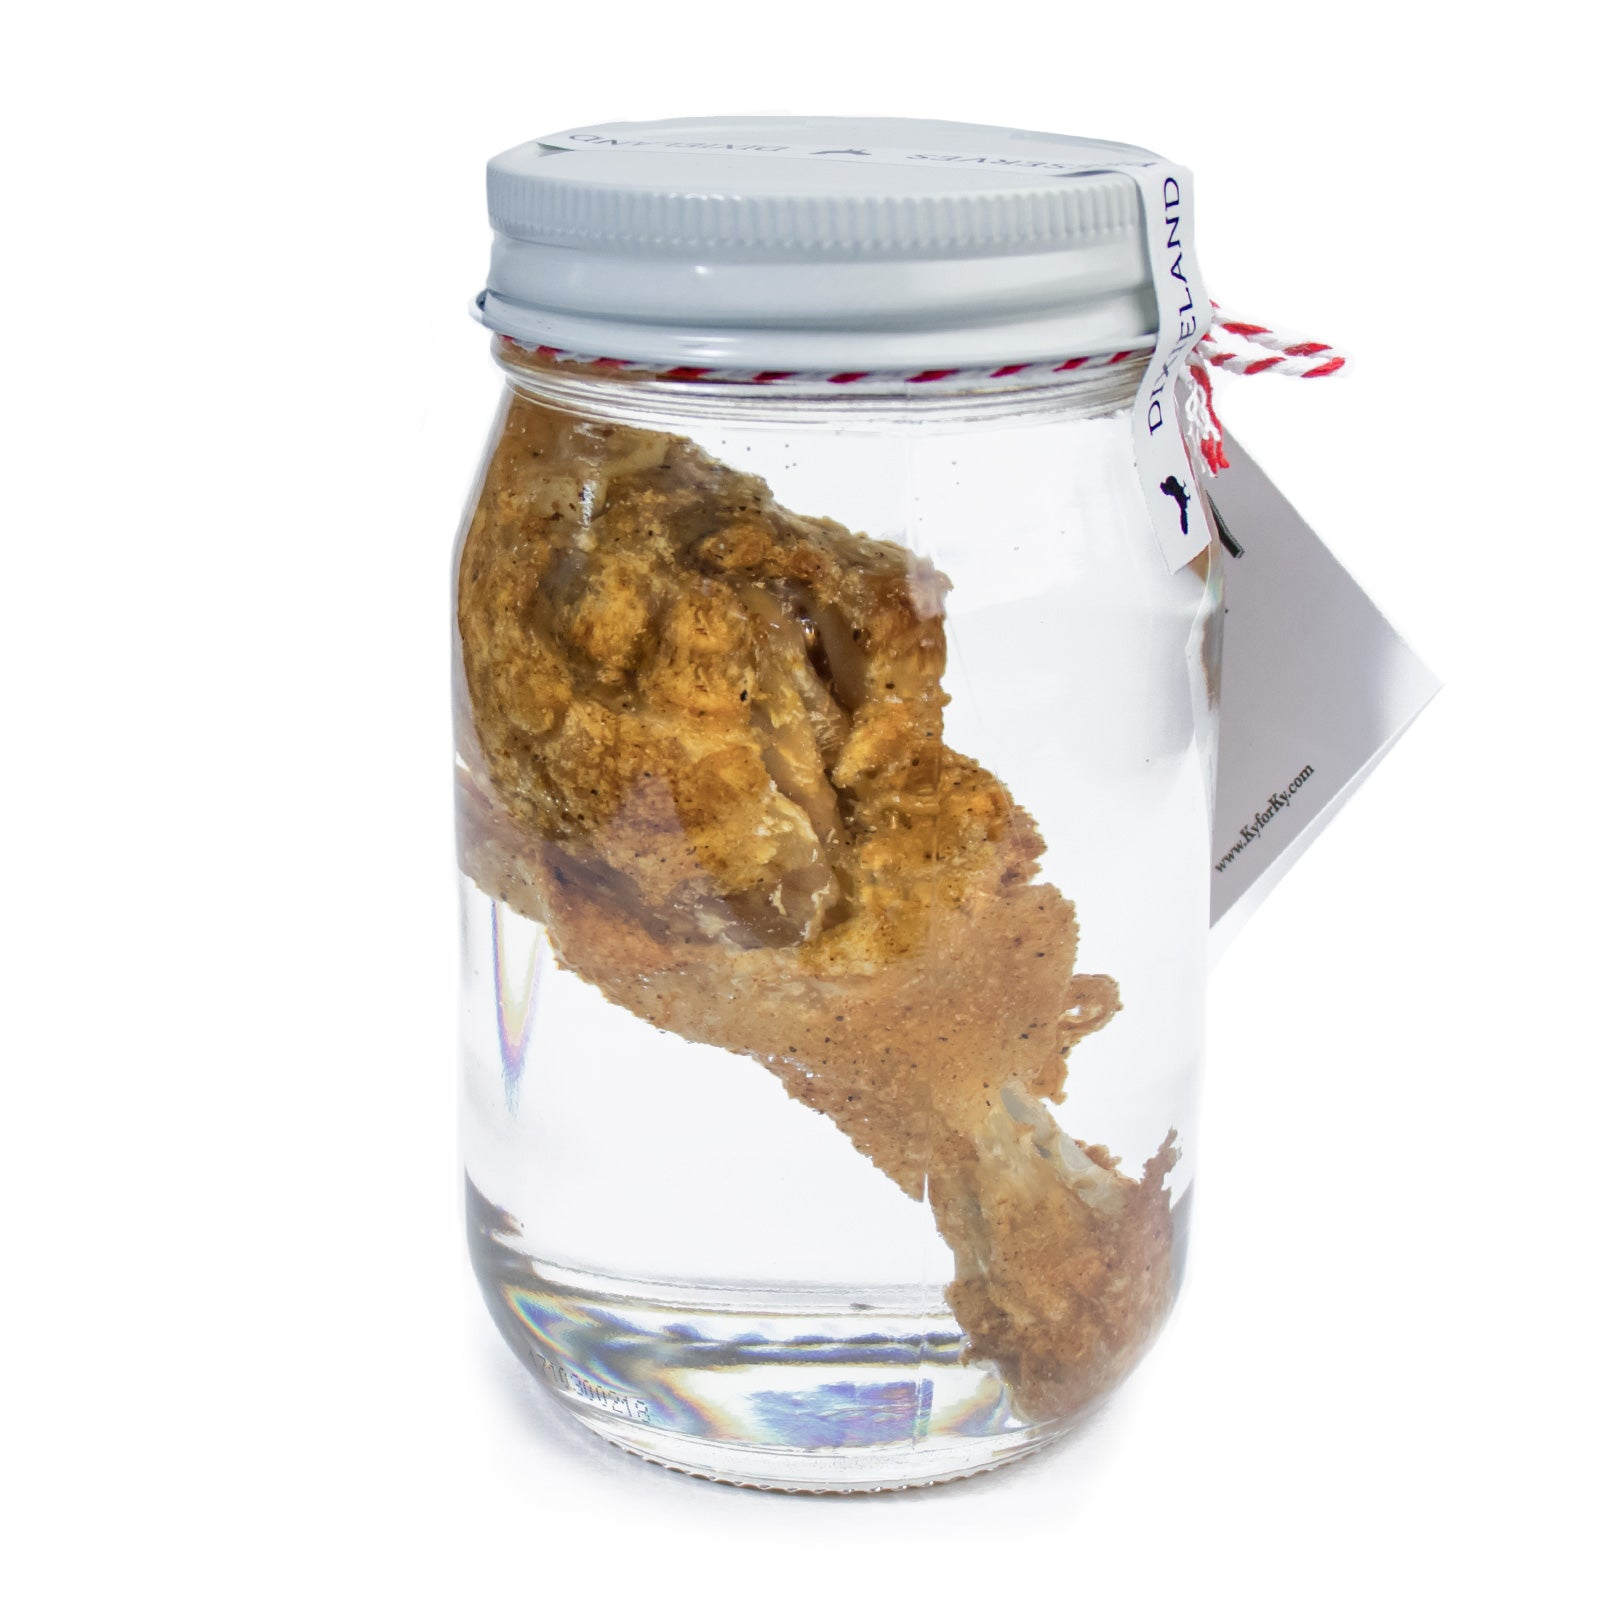 Preserved Fried Chicken Drumstick-Odds and Ends-KY for KY Store